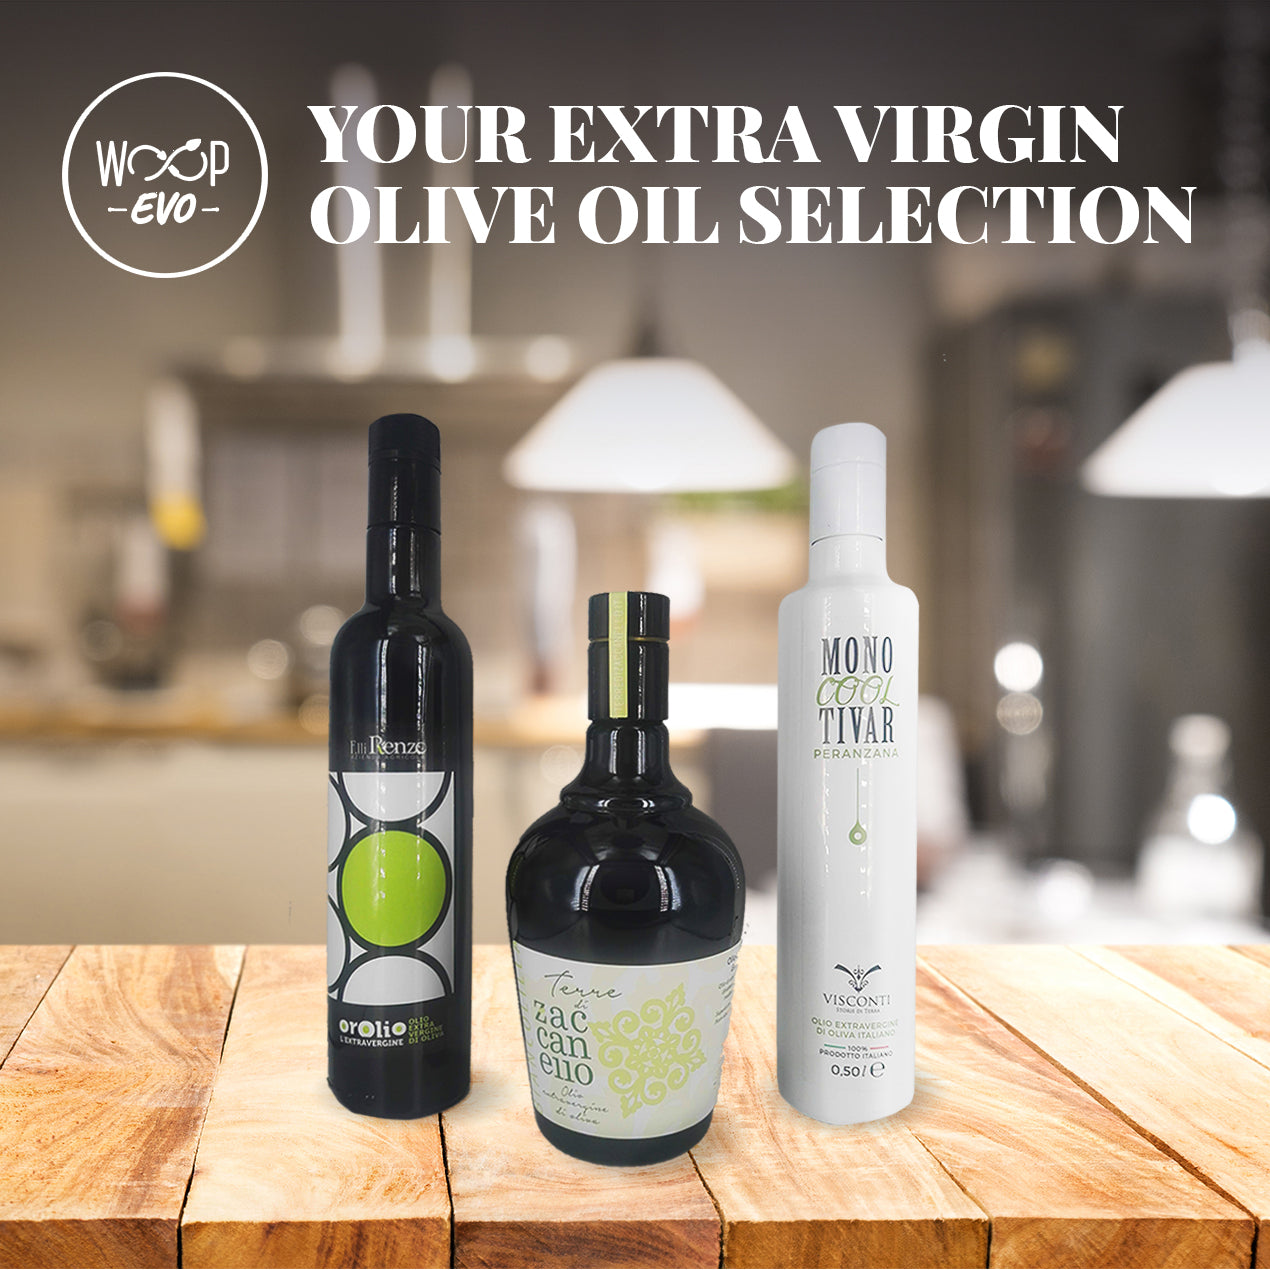 Extra Virgin Olive Oil - Subscription Box